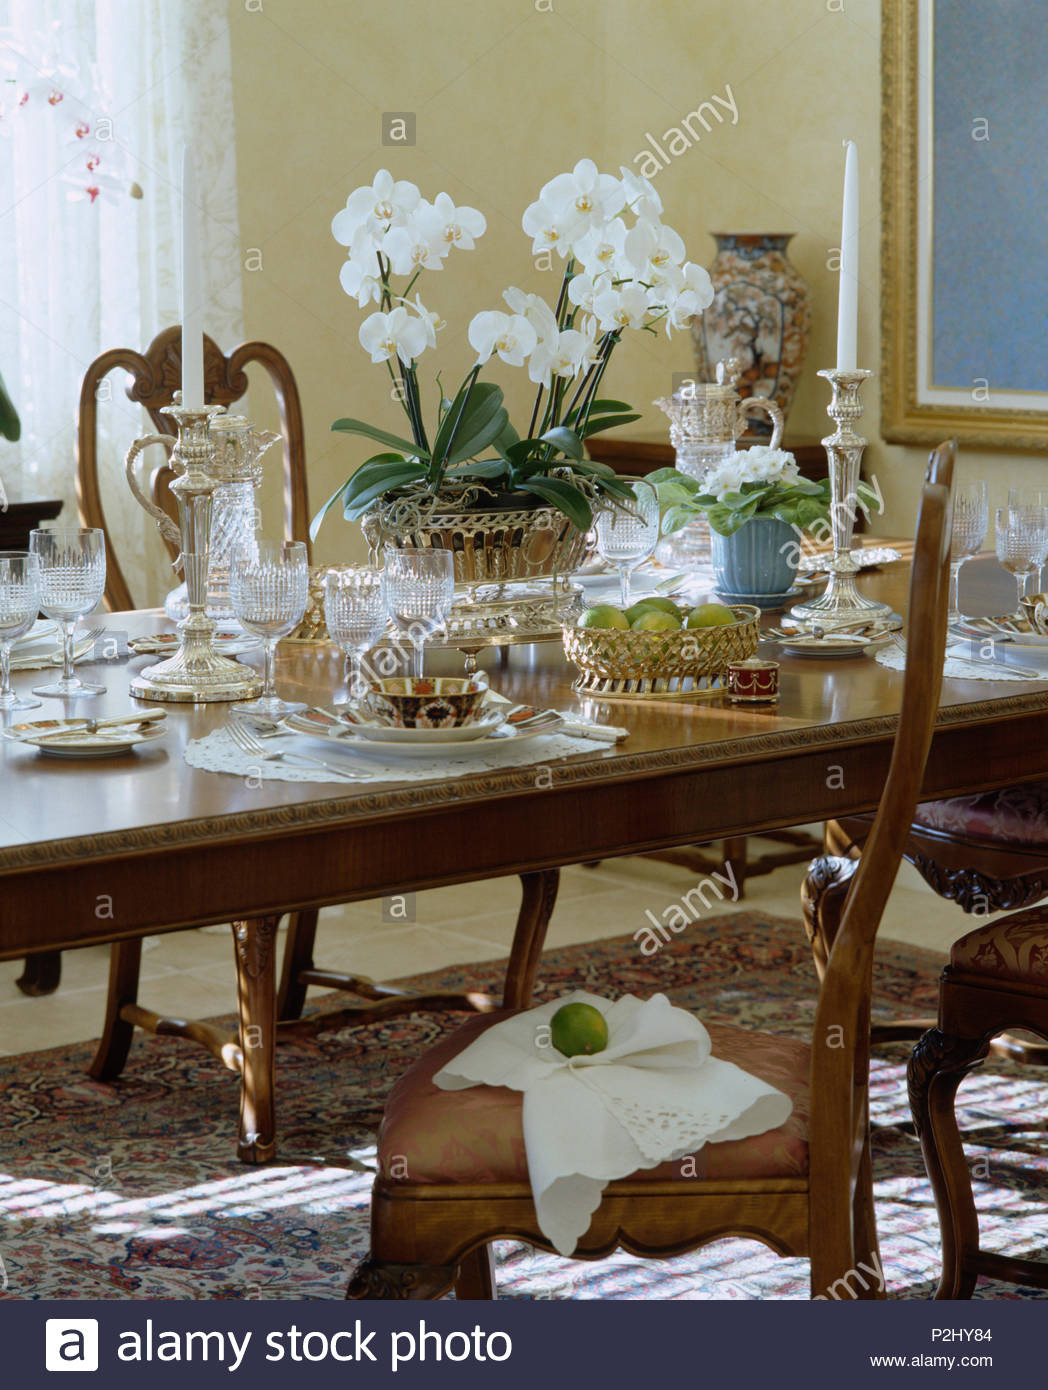 white orchid in pot on vintage table set for lunch with antique china in country dining room P2HY84